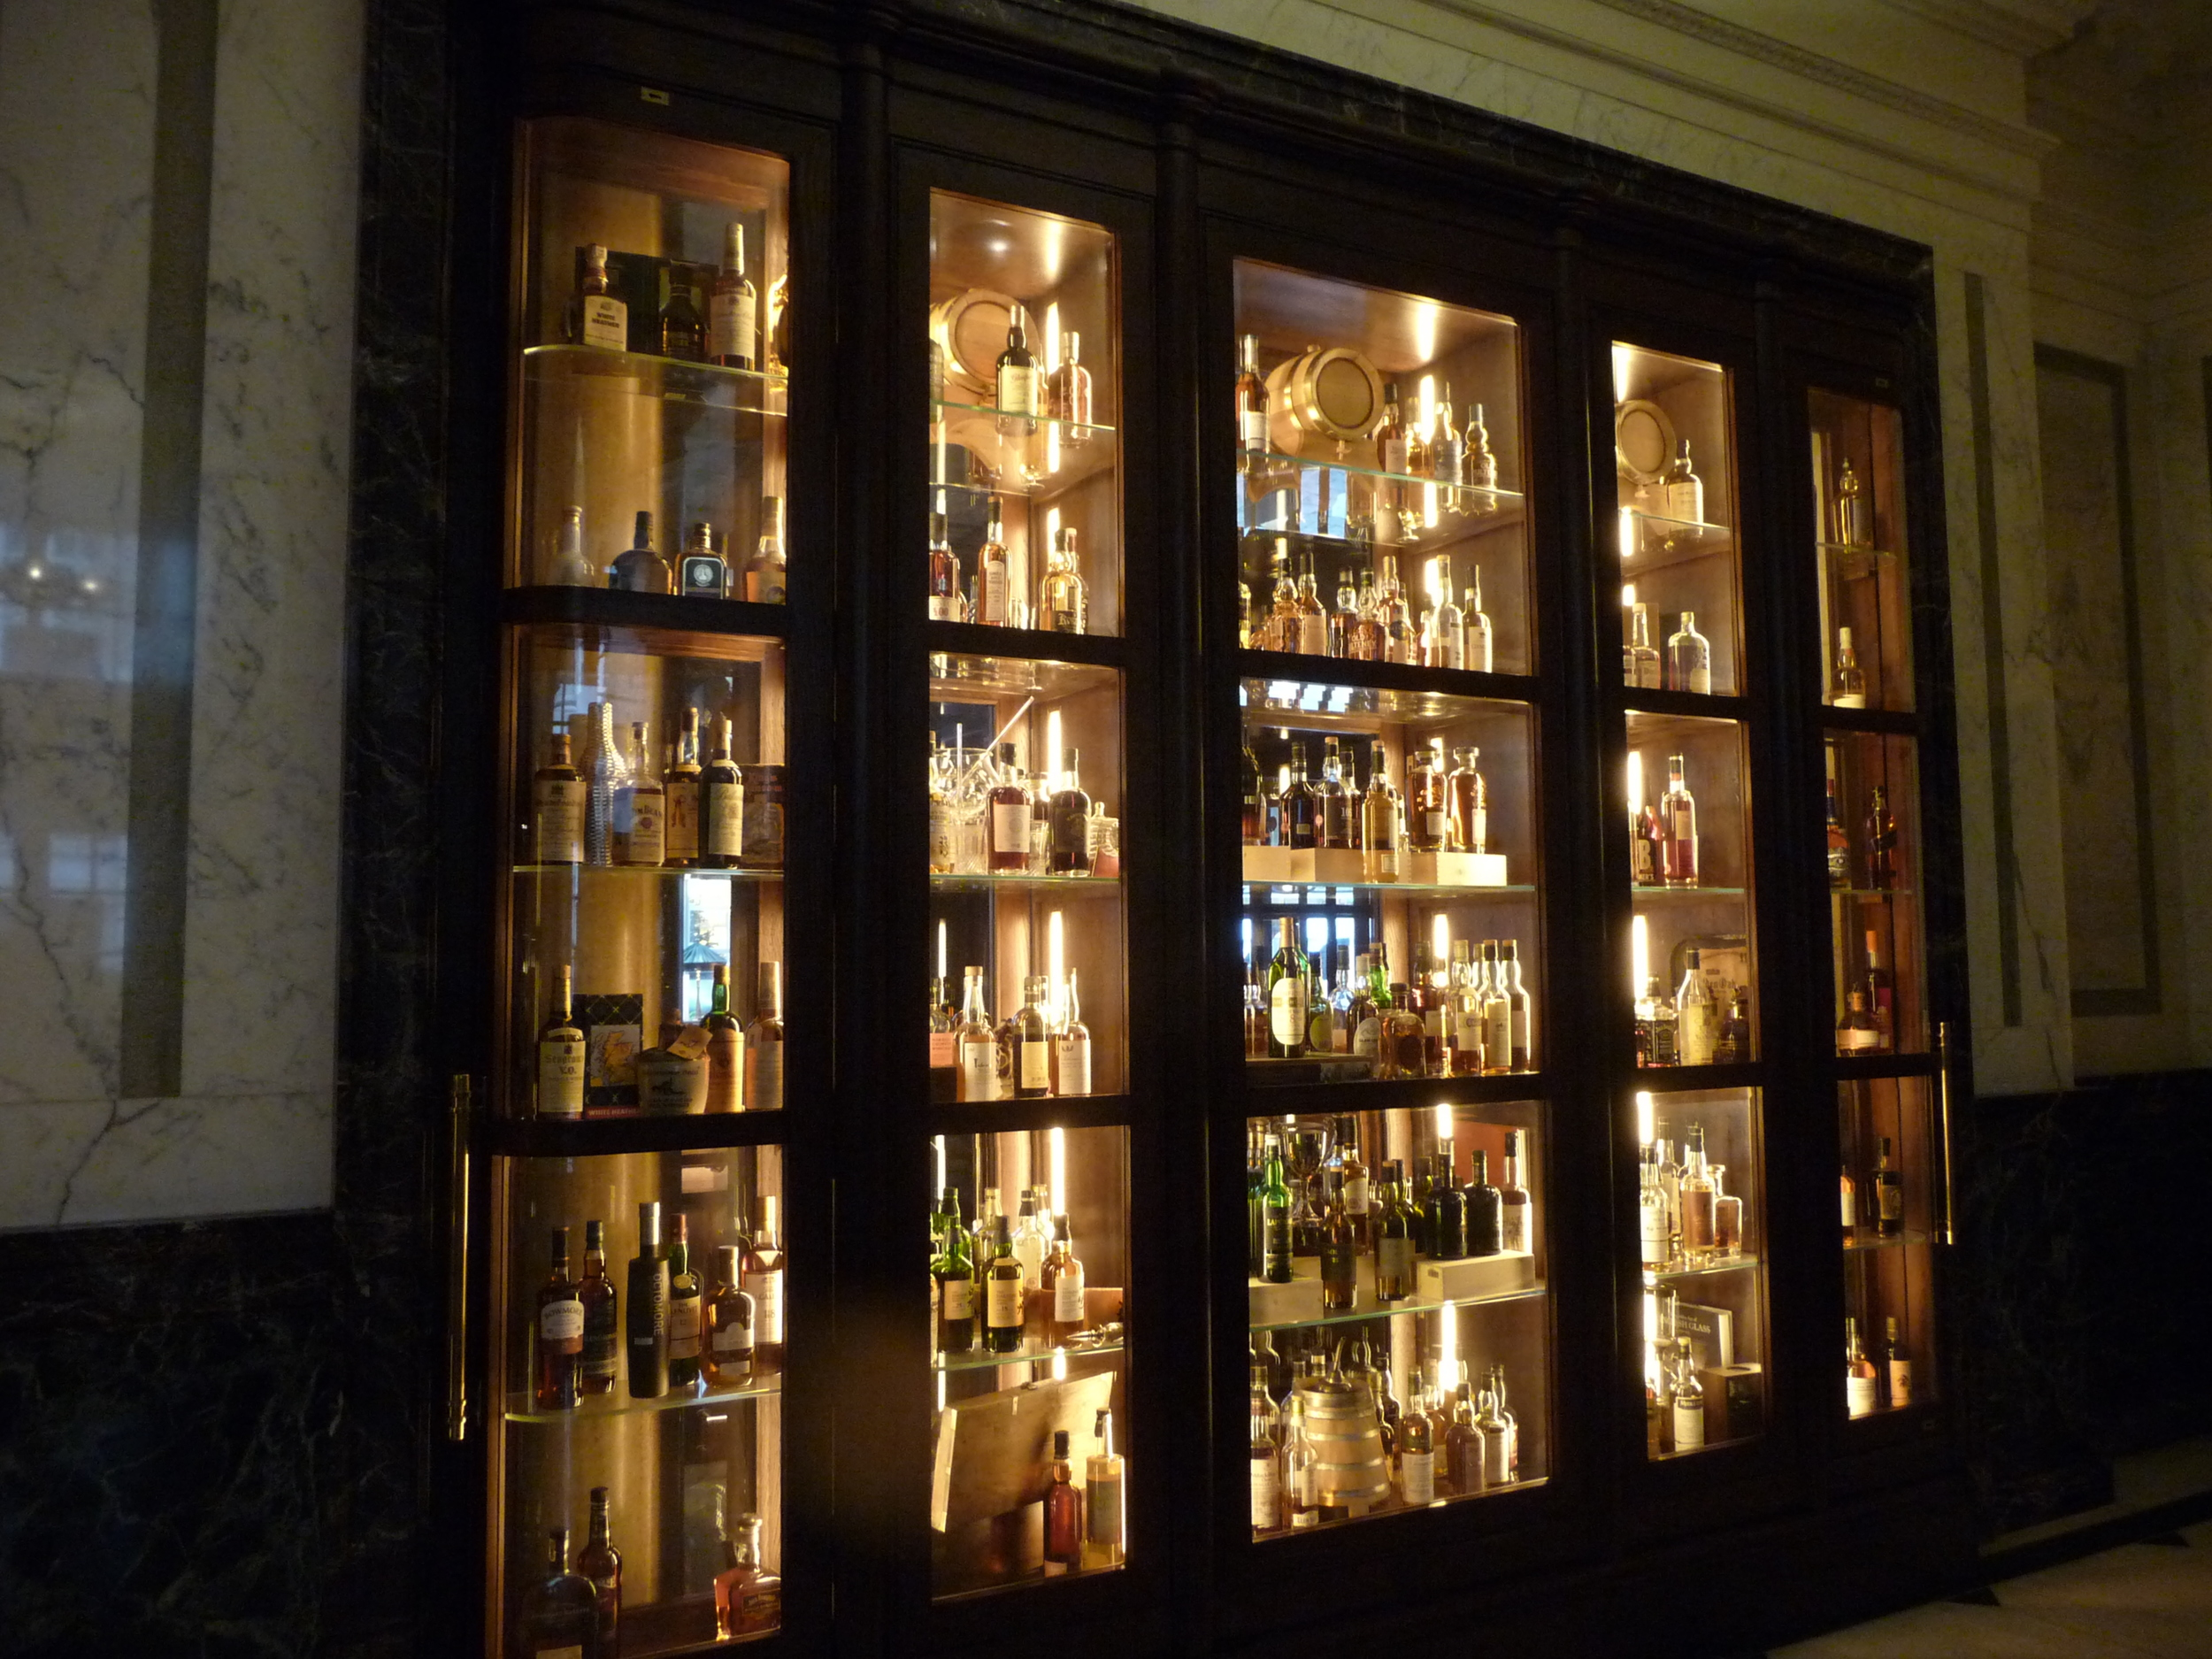 A cabinet of bottles outside the Scarfe bar